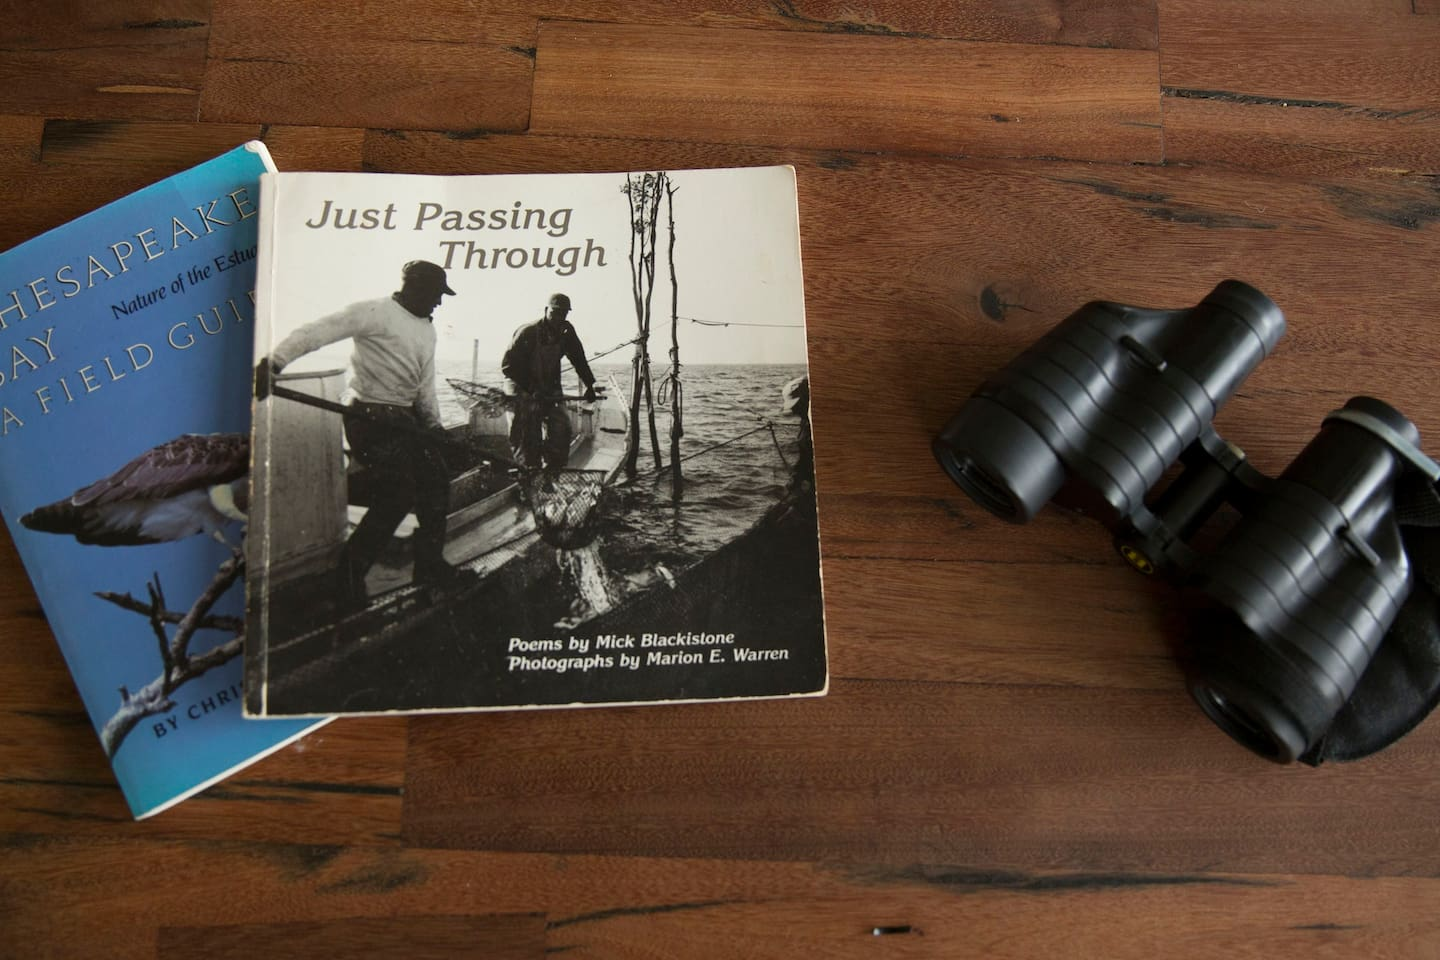 Tools of the birdwatching trade